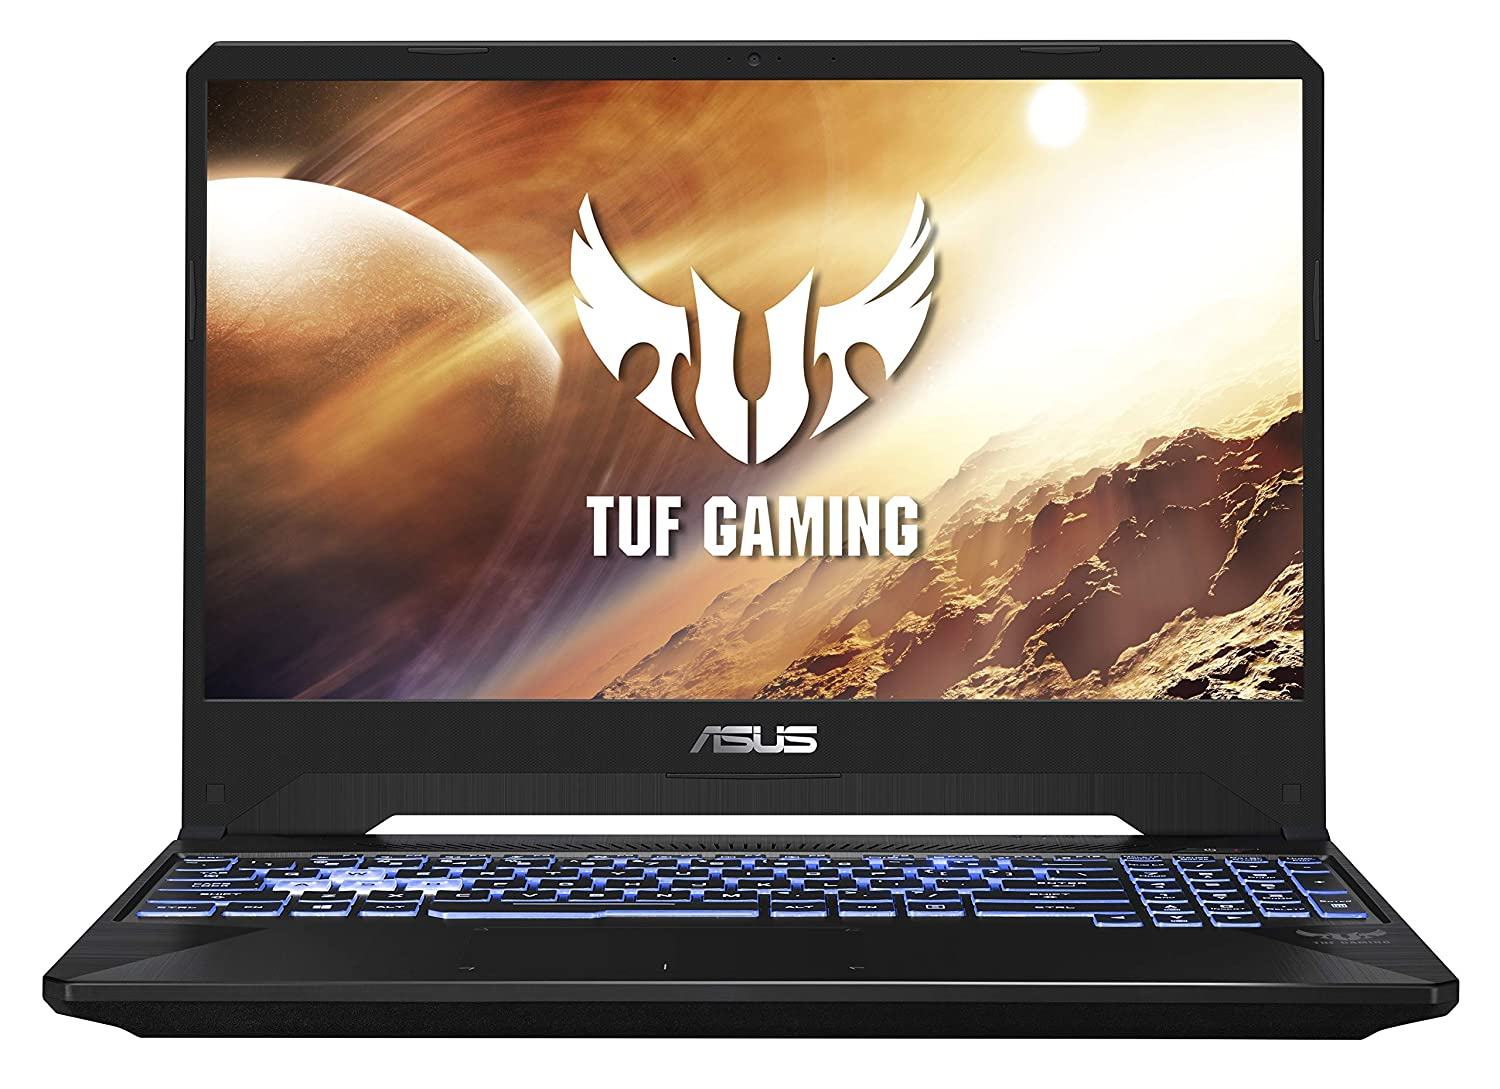 ASUS TUF Gaming FX505DT 15.6-inch FHD Laptop, Ryzen 5 3550H, GTX 1650 4GB GDDR5 Graphics (8GB RAM/1TB HDD + 256GB NVMe SSD/Windows 10/Stealth Black/2.